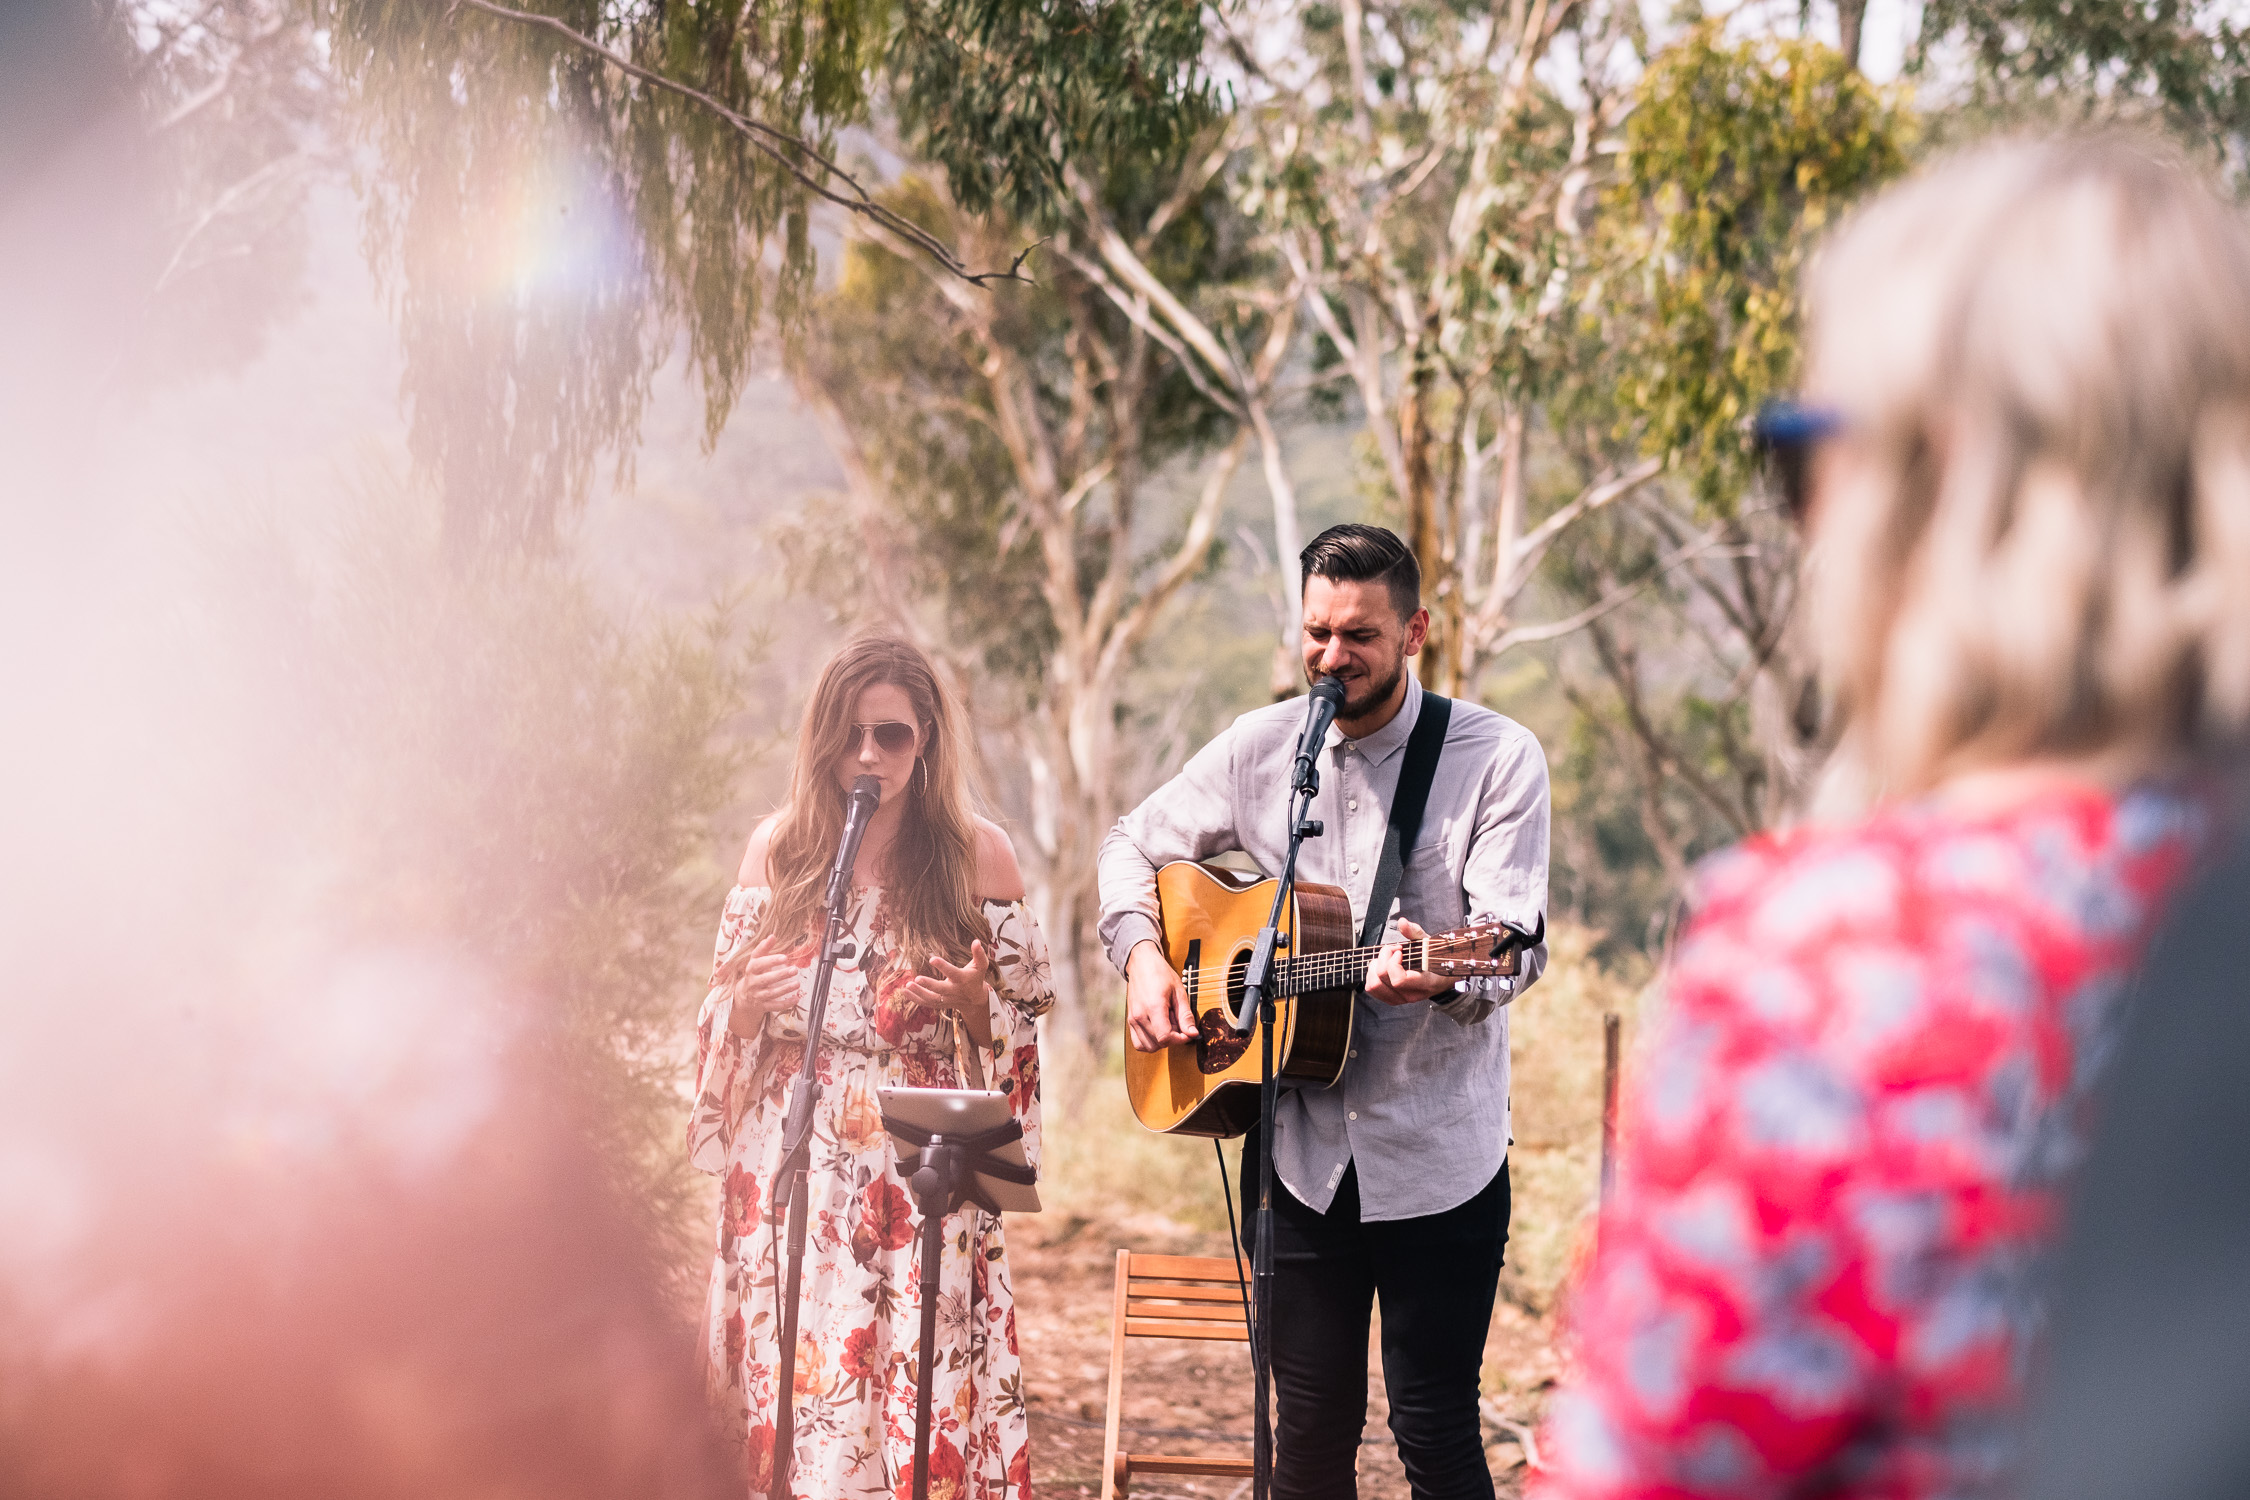 Melbourne Sunnystones Camp Wedding - worship during outdoor ceremony